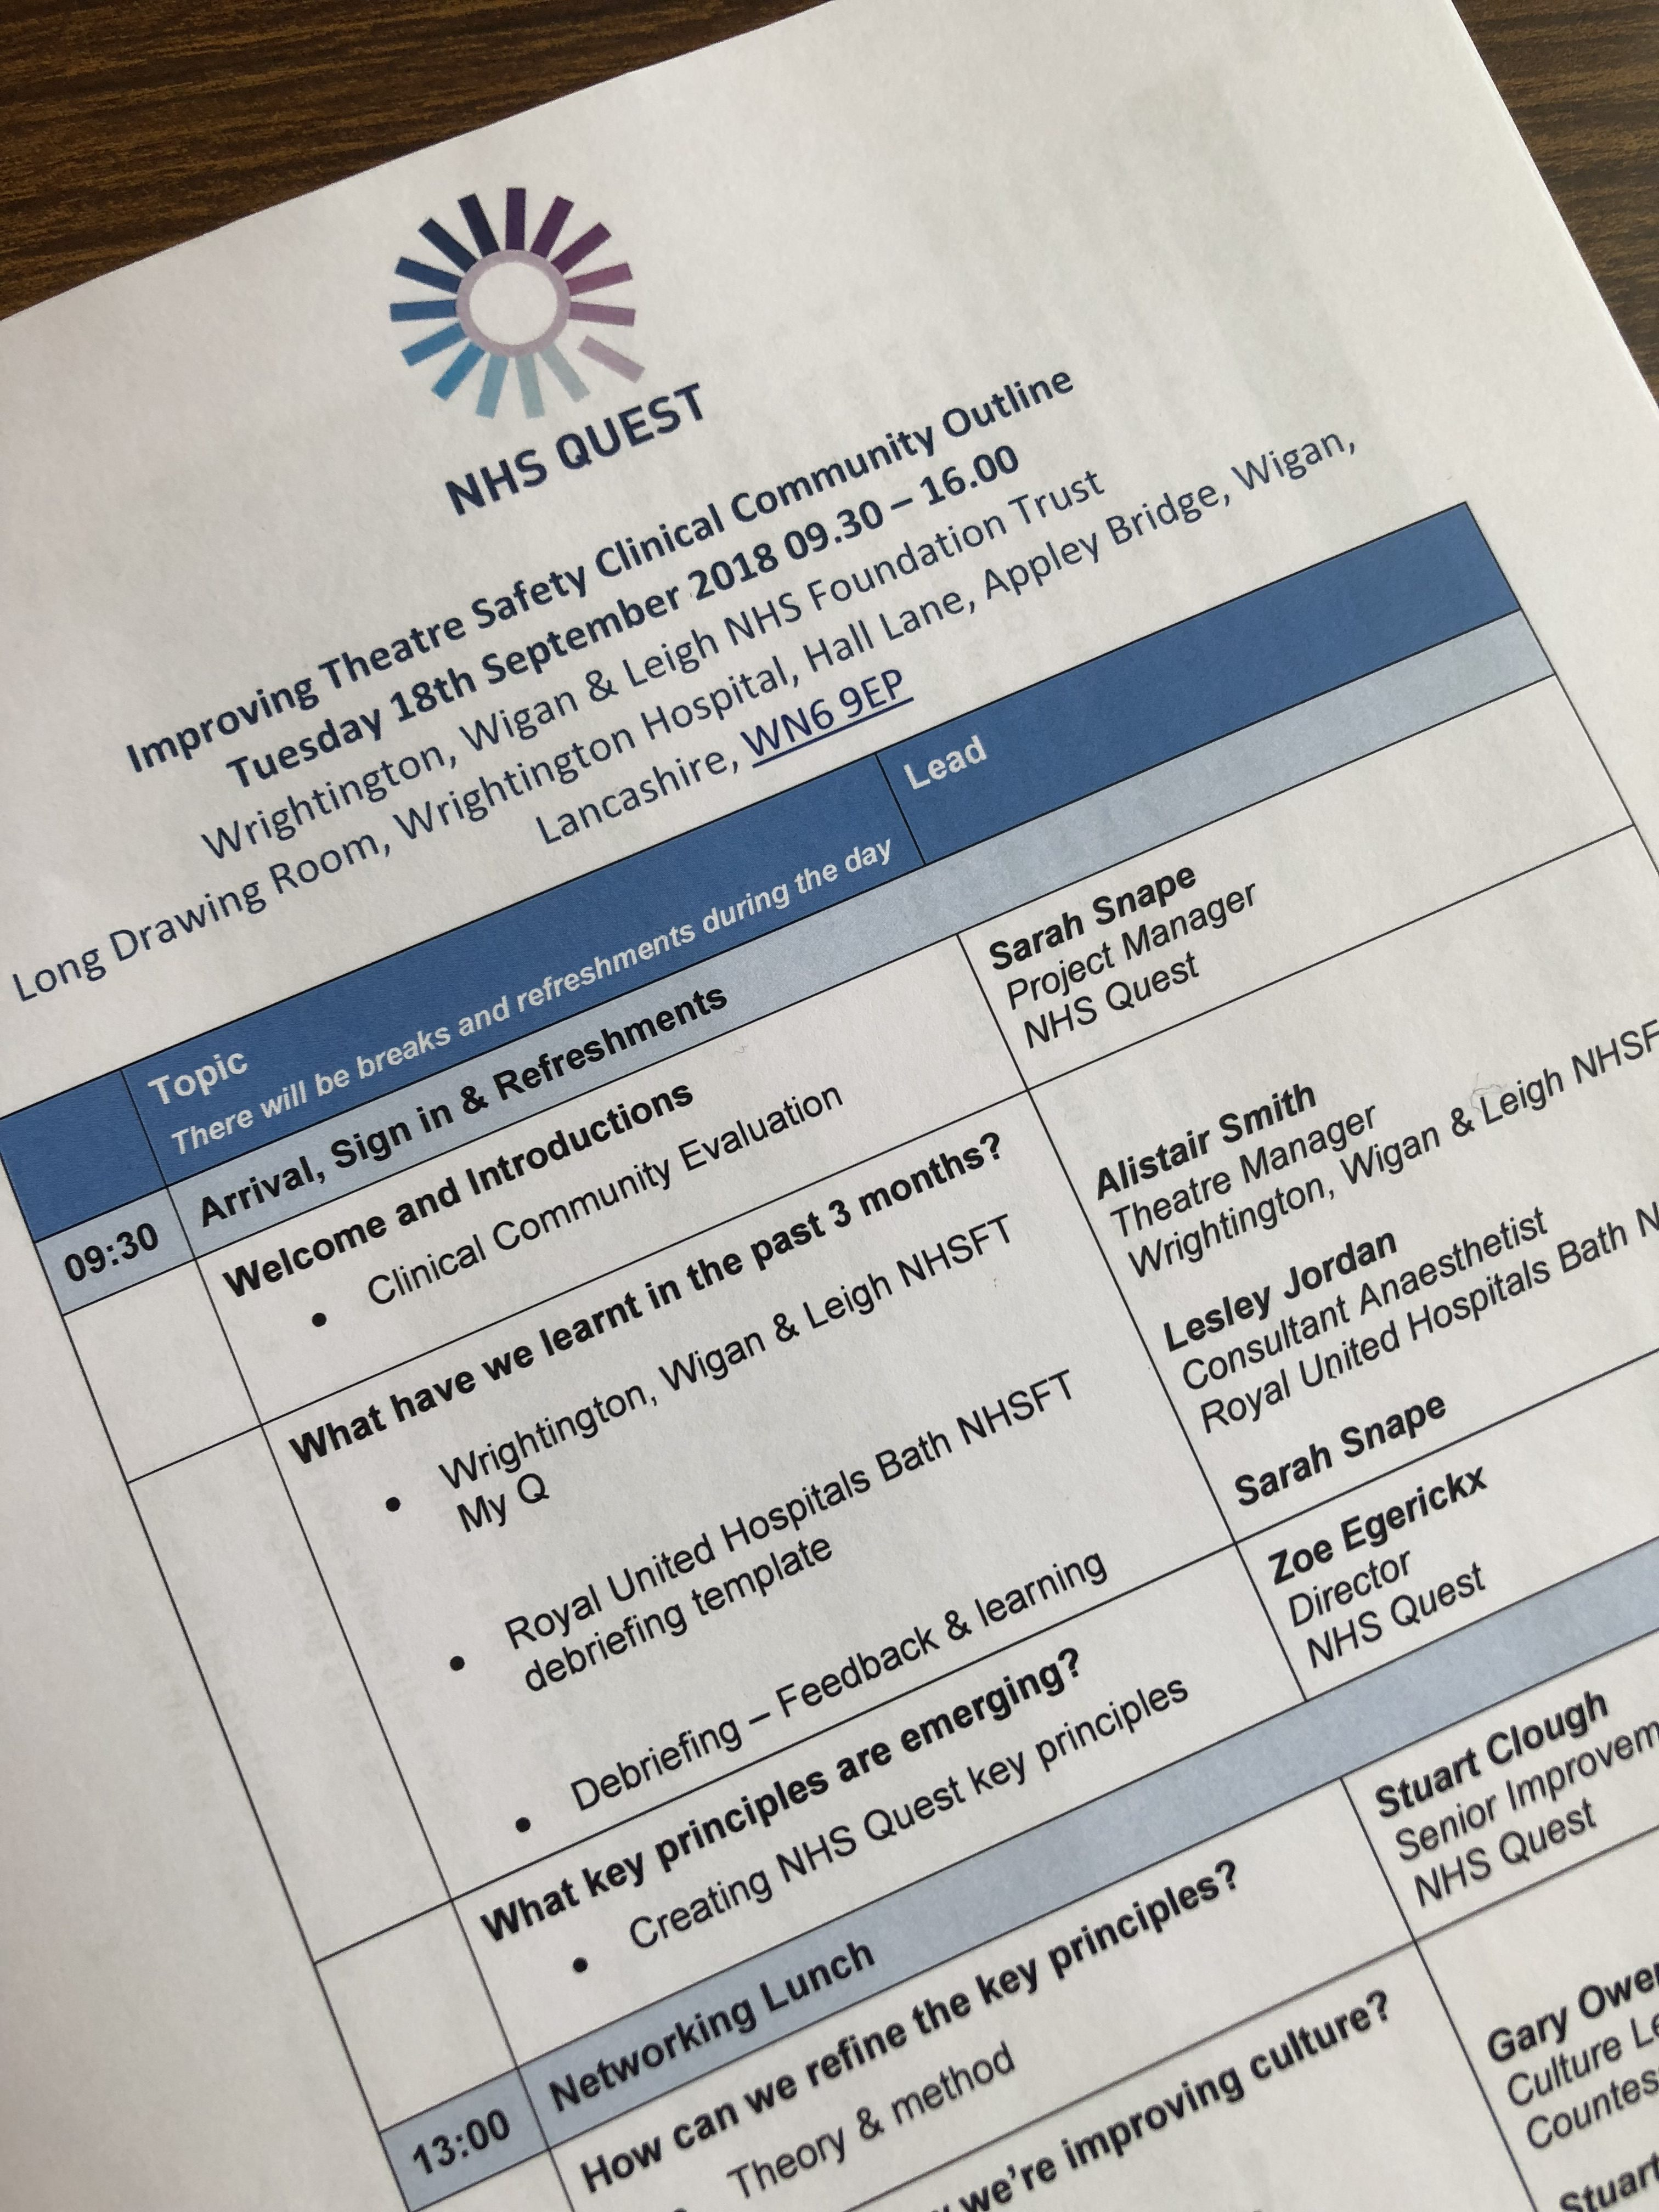 Live Blog Improving Theatre Safety Clinical Community Quest